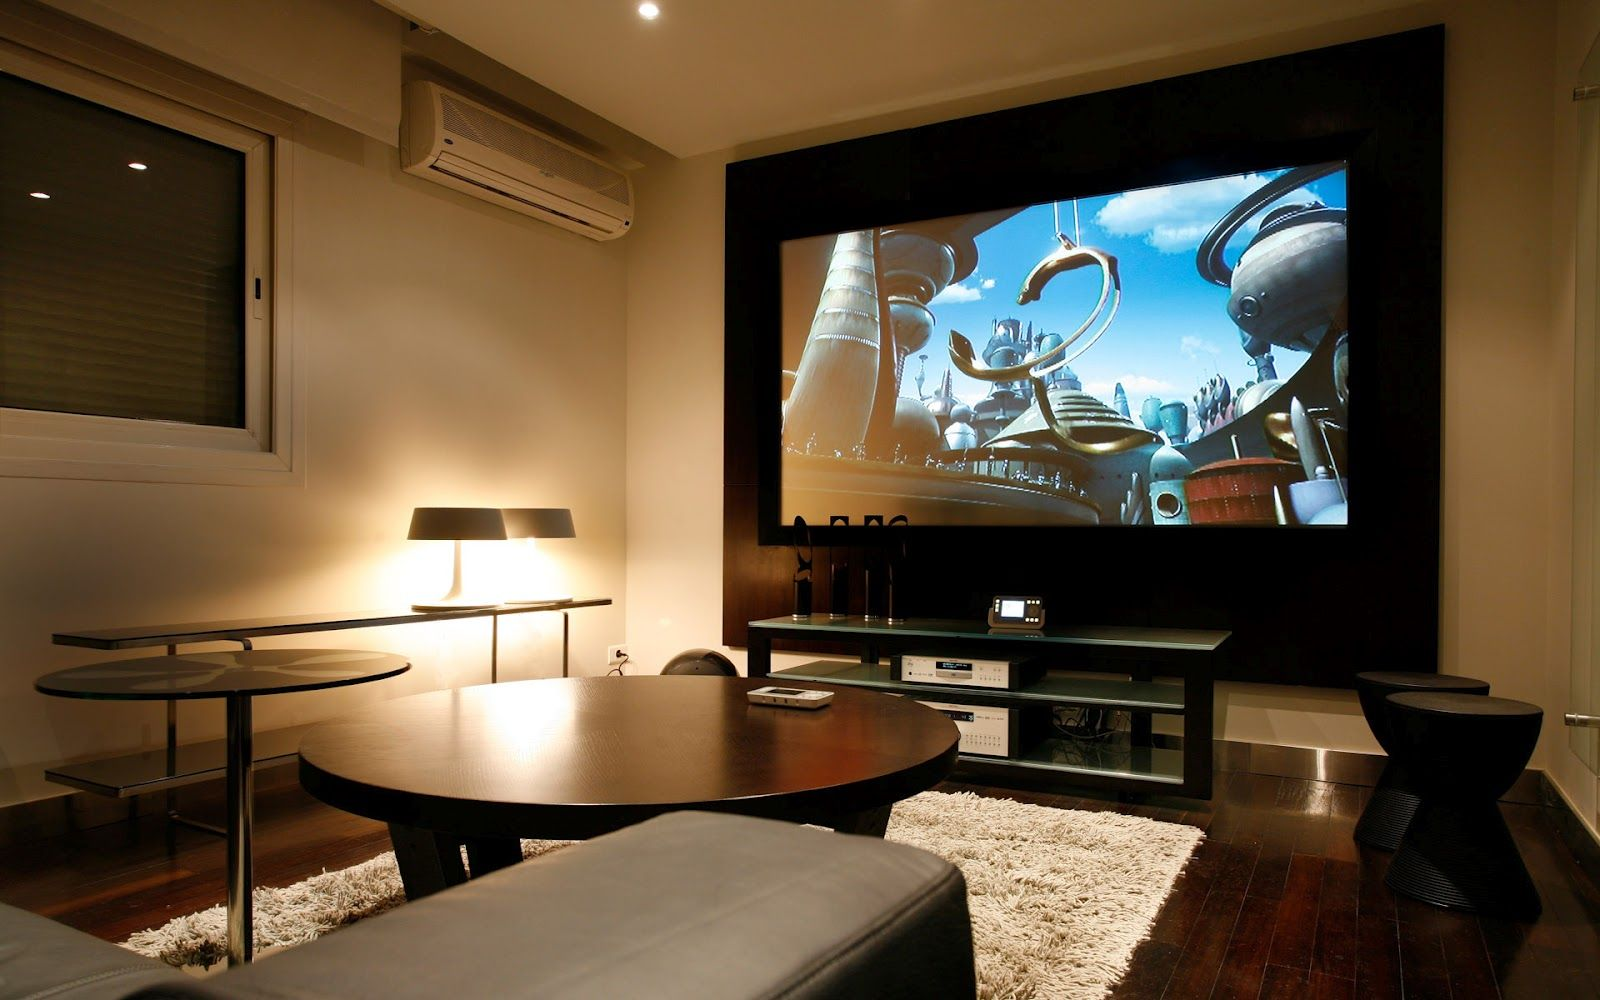 Interior Astonishing Home Entertainment Room Inspirations Wall Mounted TV With Wooden Coffee Table And Grey Sofa